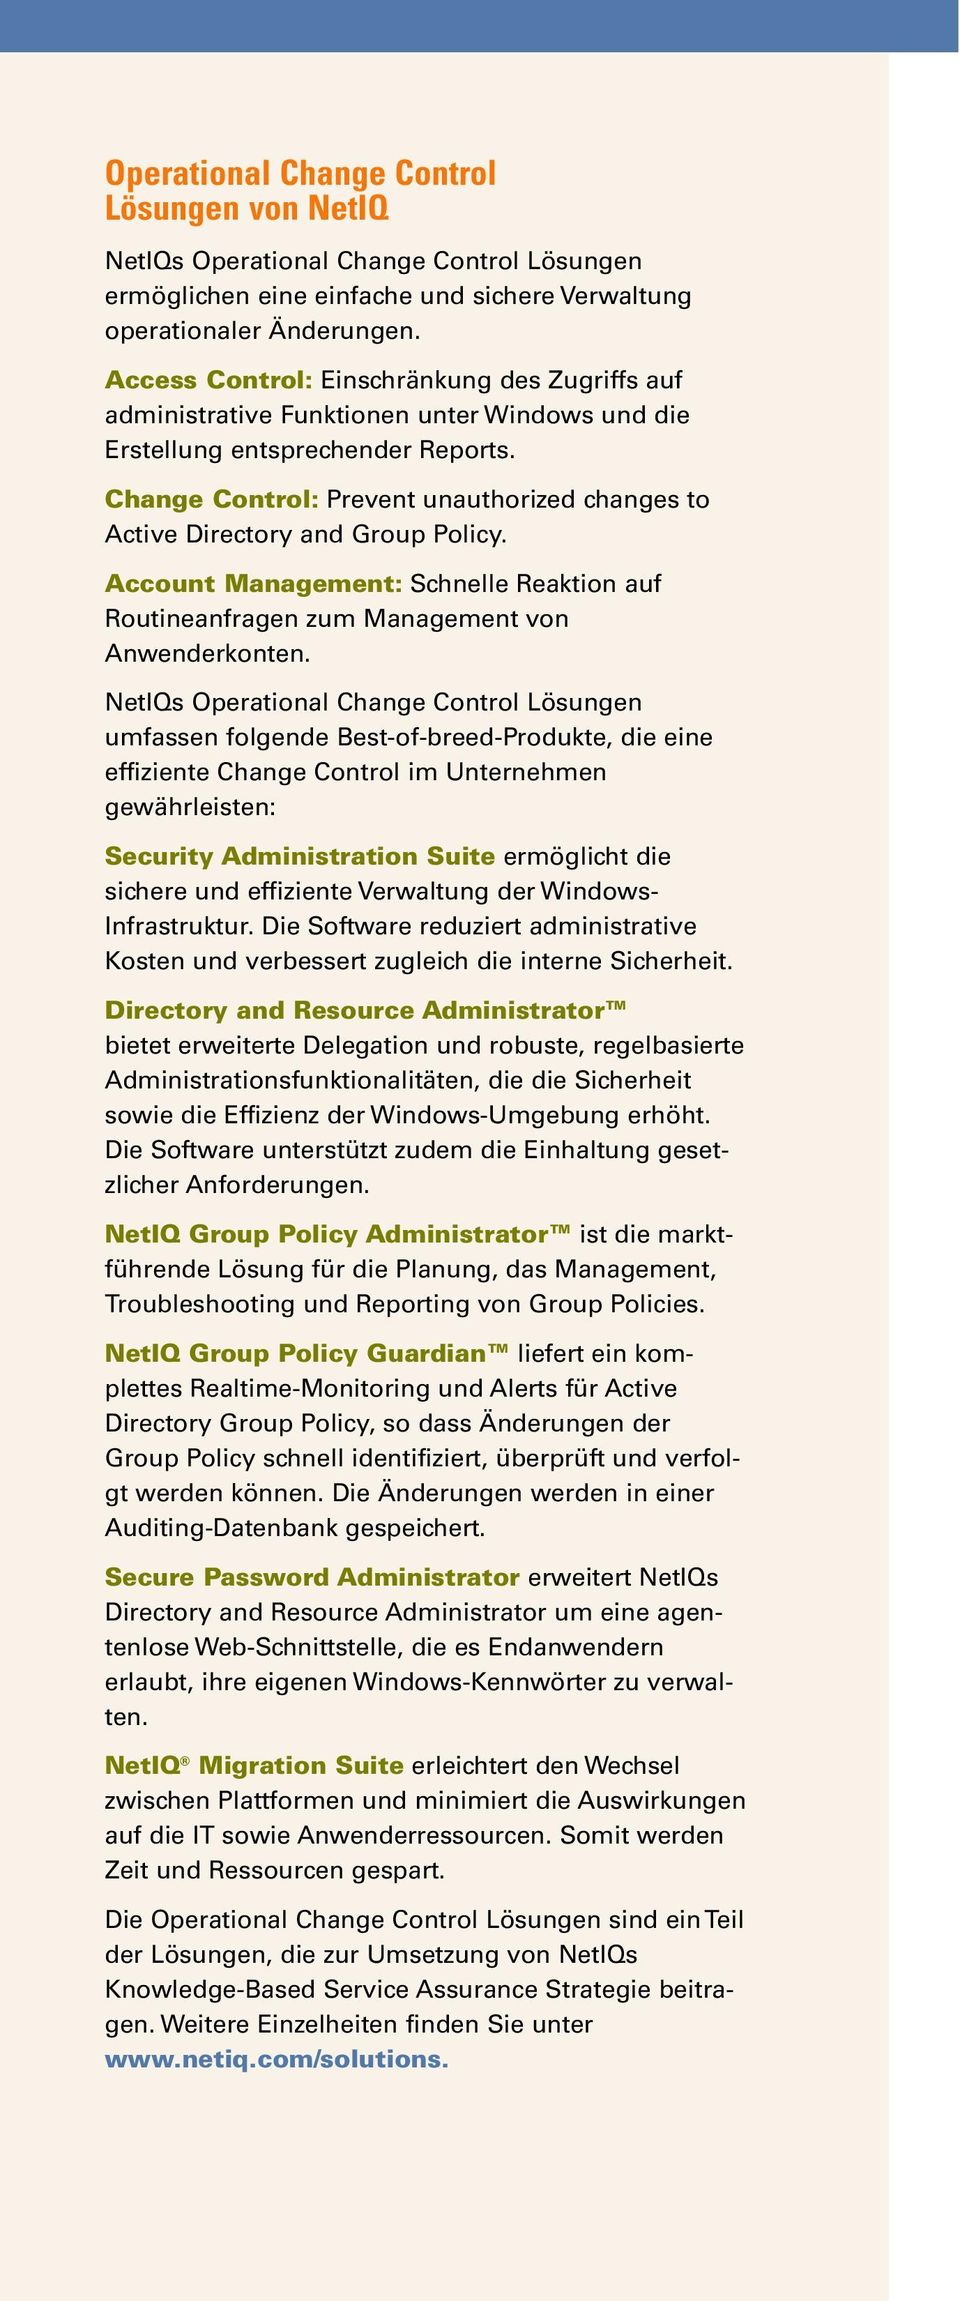 Change Control: Prevent unauthorized changes to Active Directory and Group Policy. Account : Schnelle Reaktion auf Routineanfragen zum von Anwenderkonten.